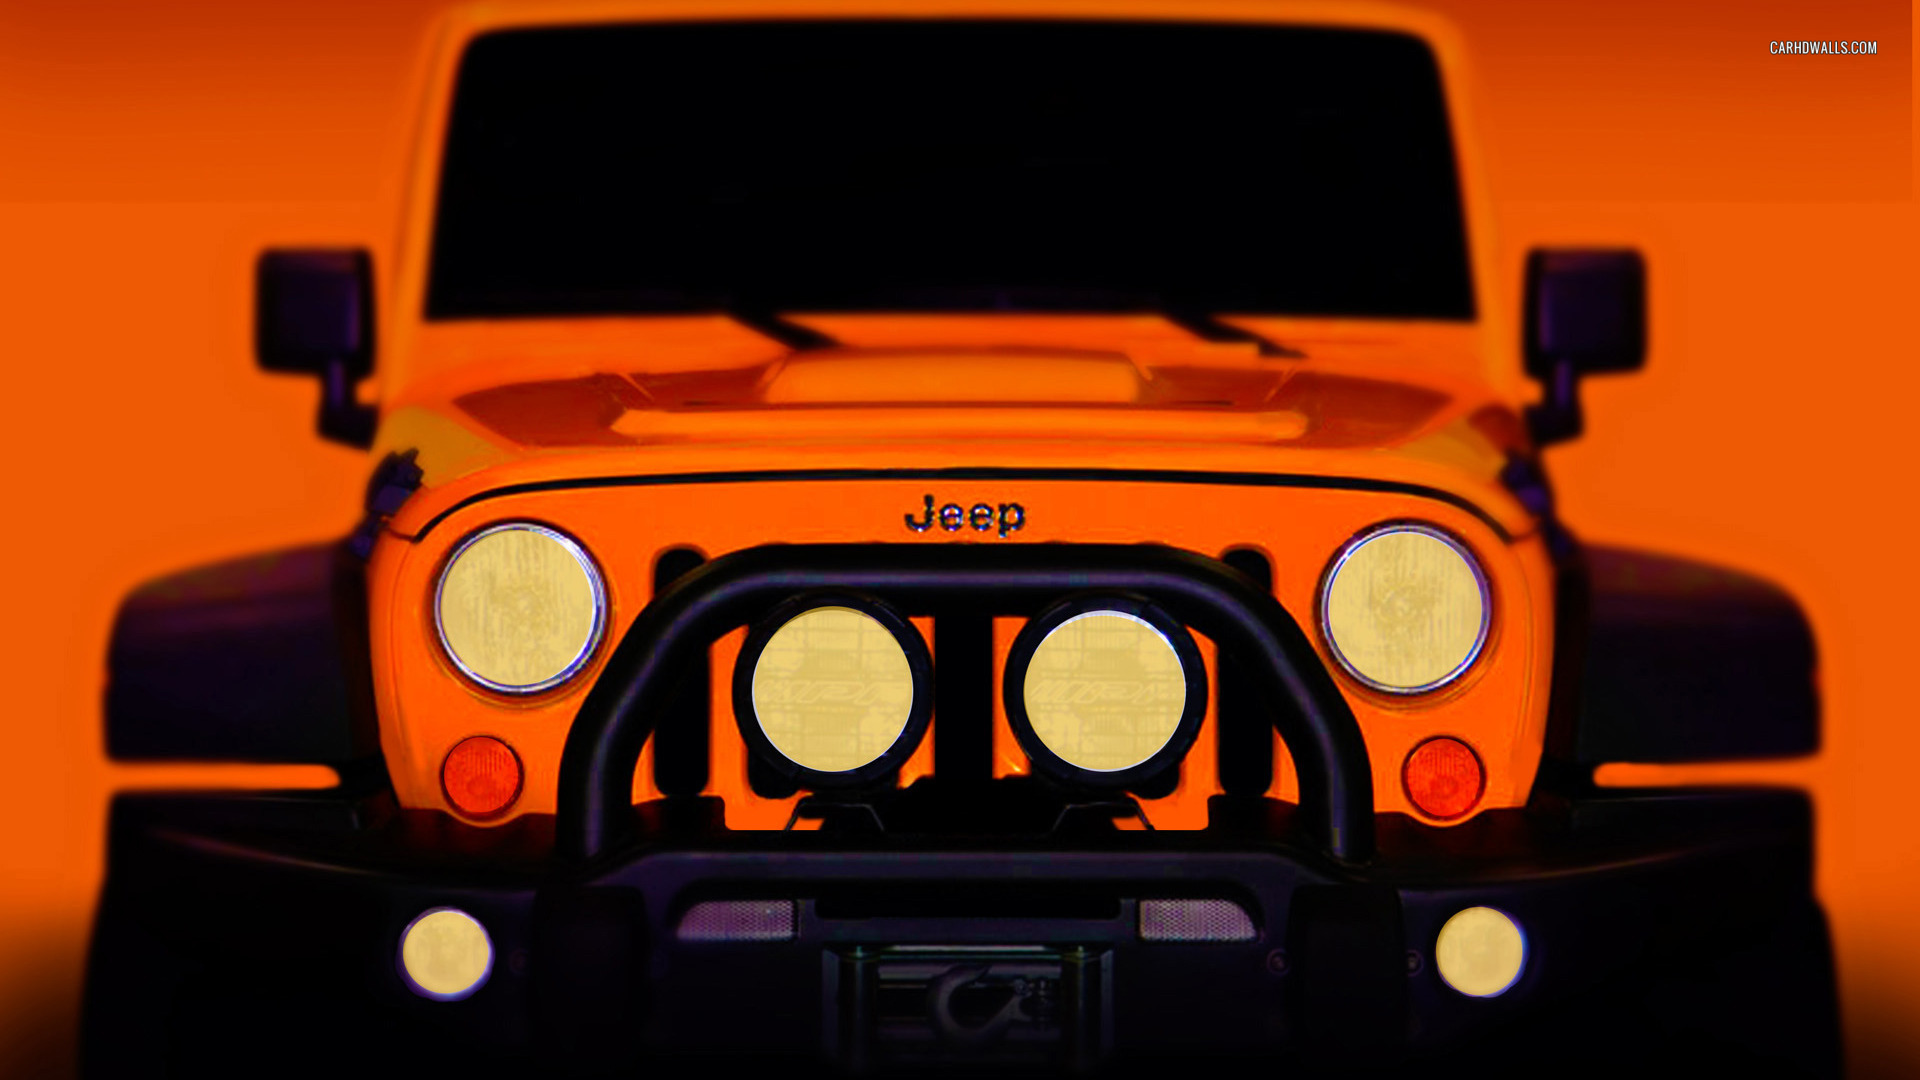 4 Door Jeep Rubicon Limited Edition 2015 4 Engine 1920x1080